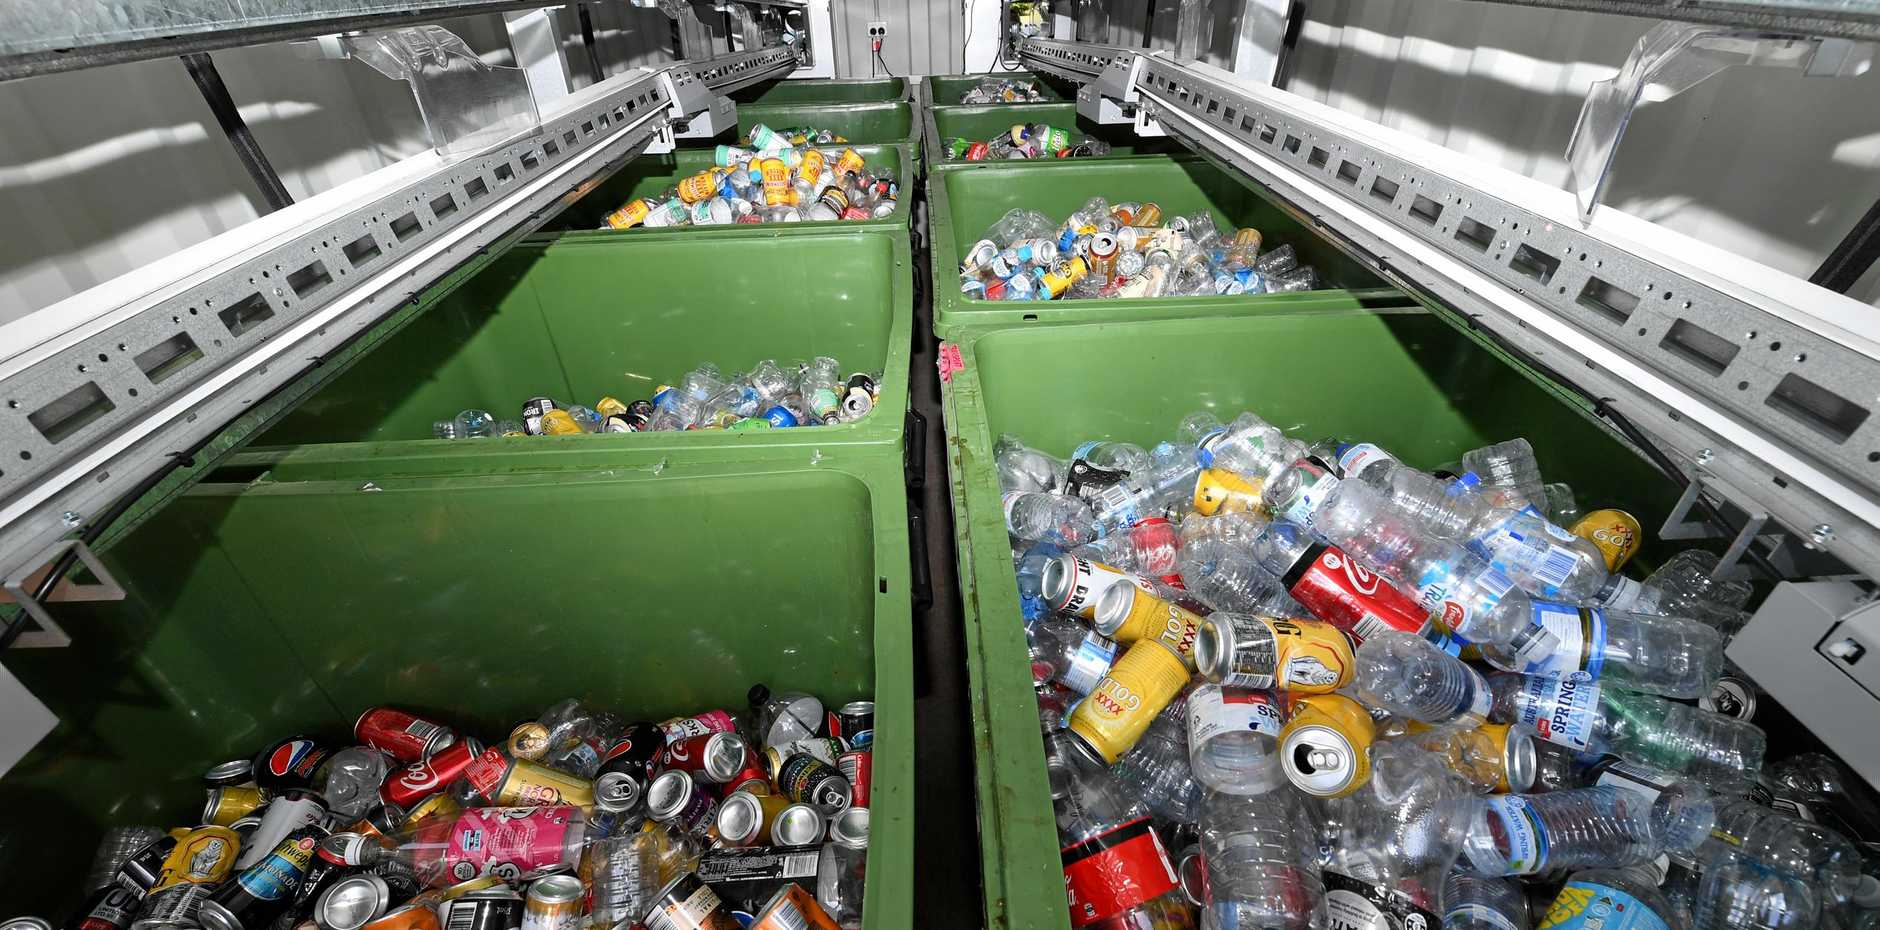 By November 1, community groups will have access to new source of revenue by cashing in old cans and bottles.